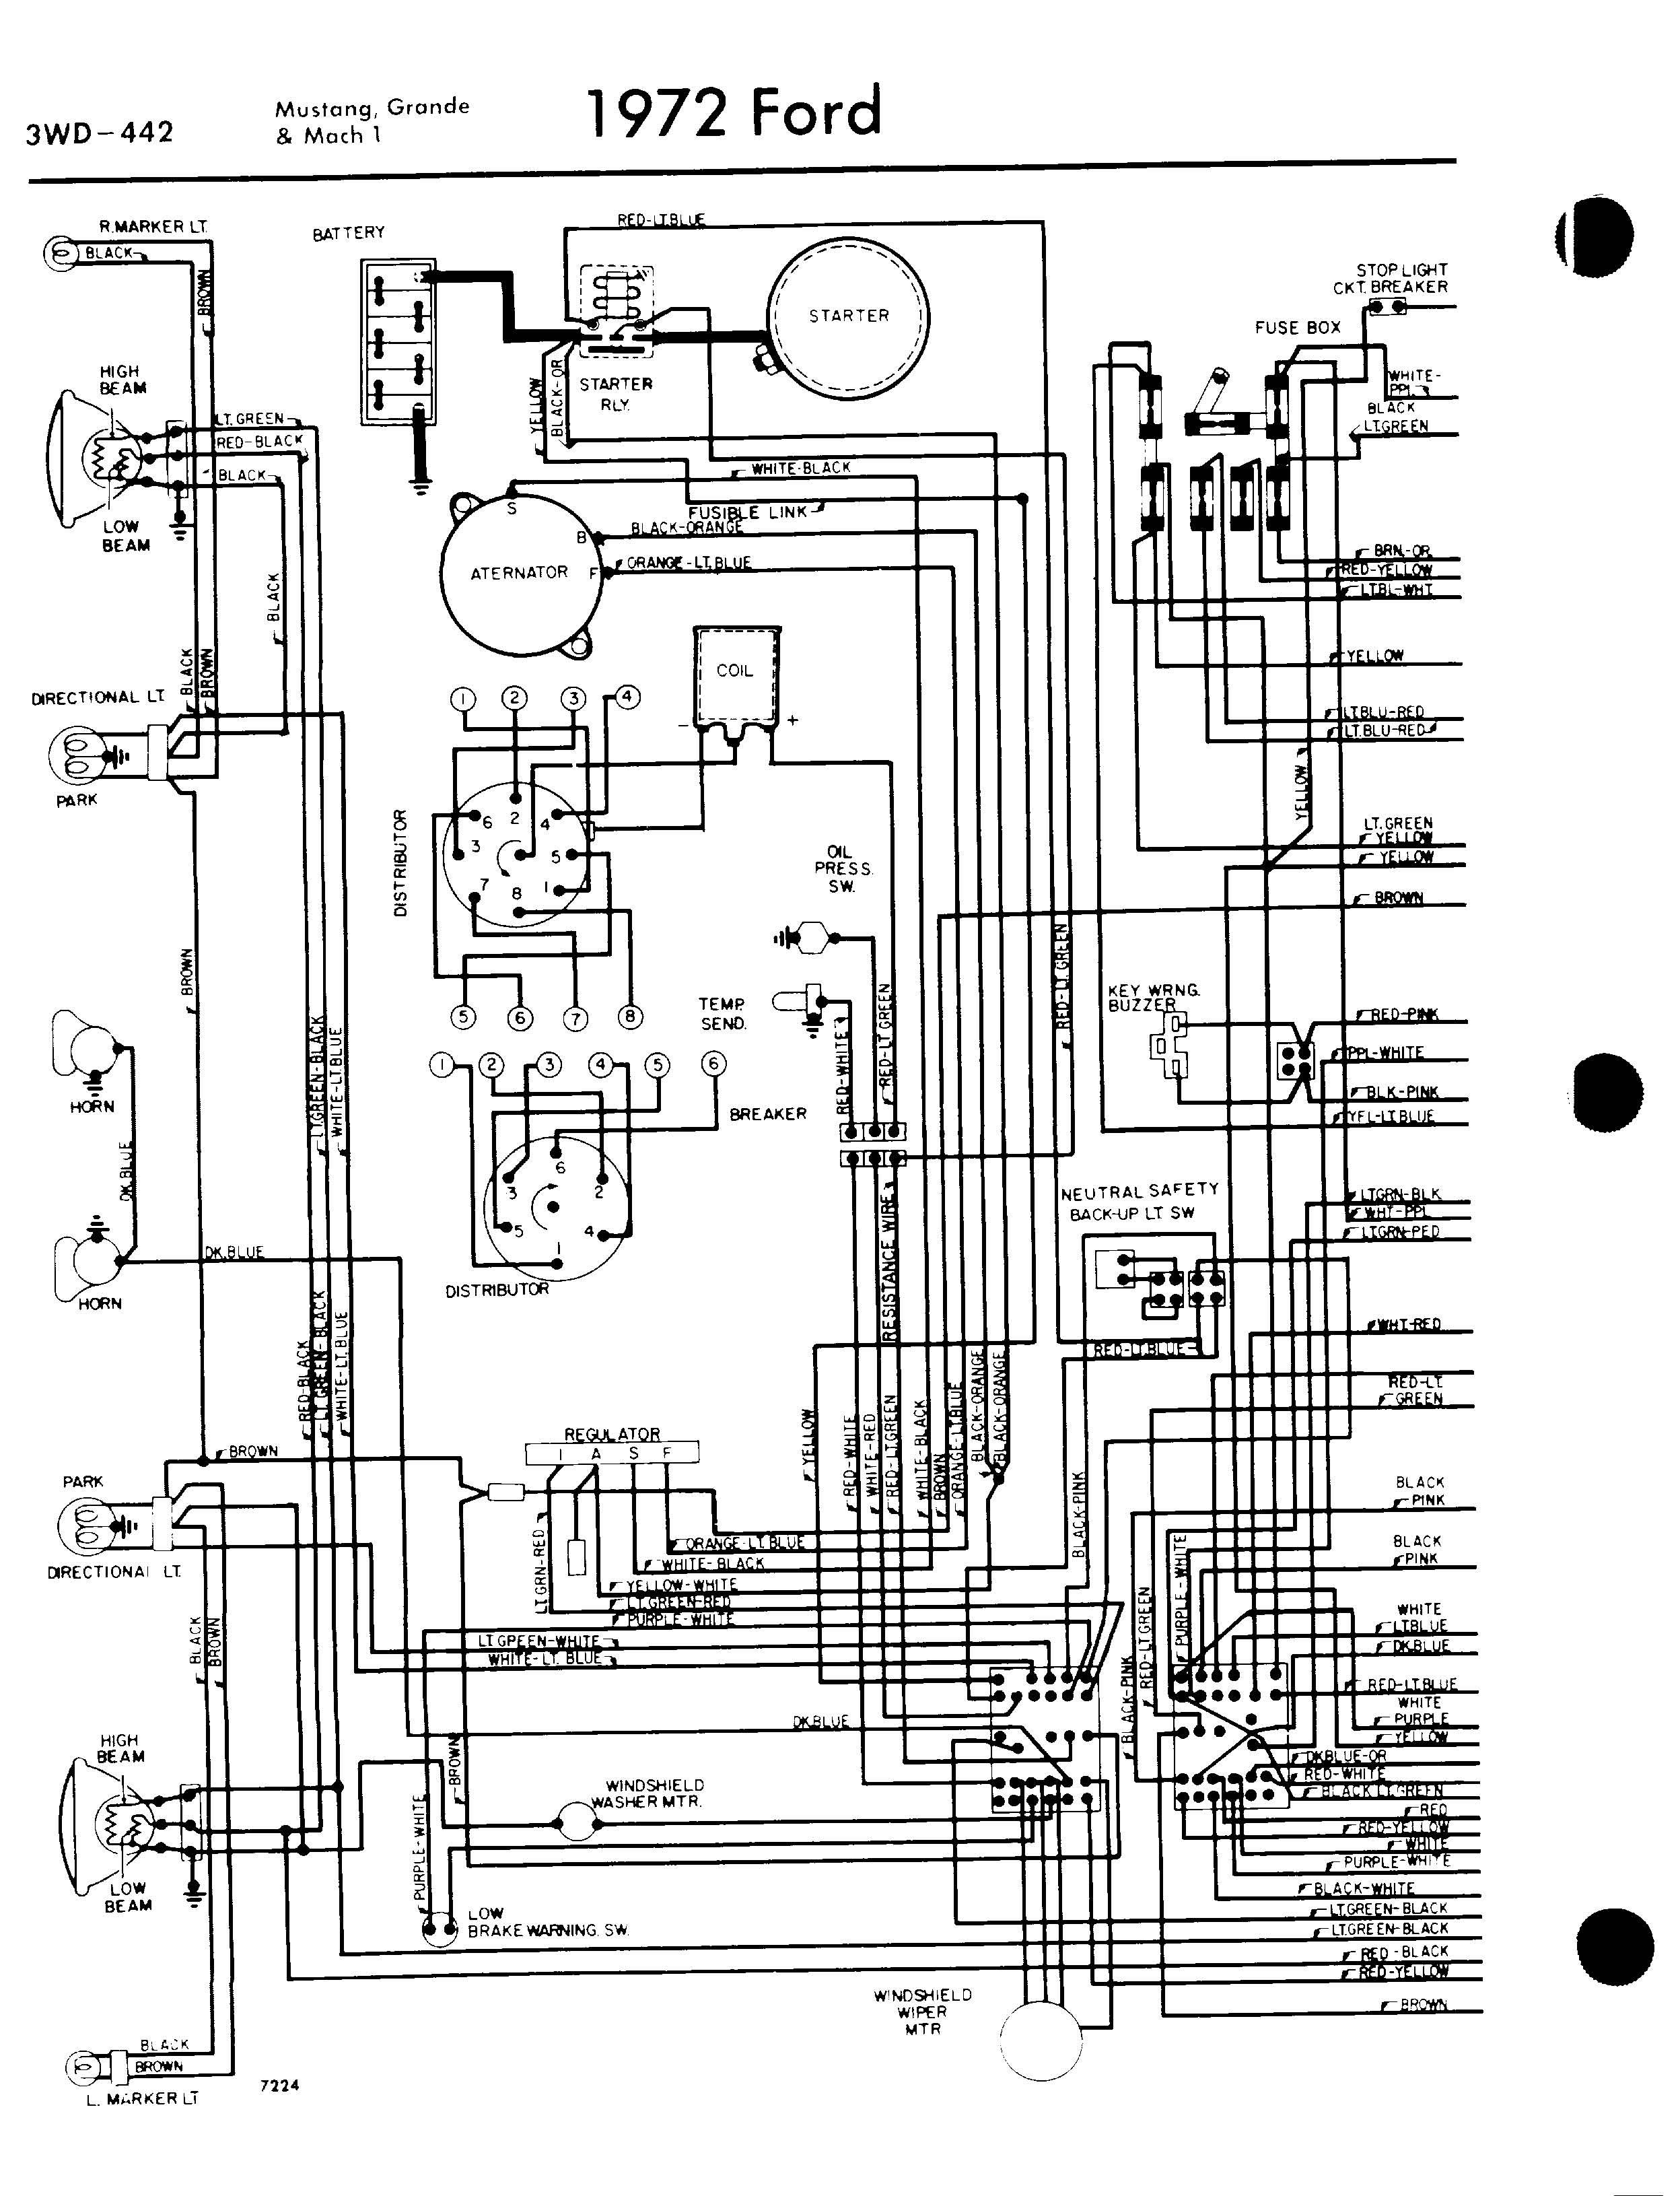 71af7a58e095e6a7716b32f1b23e8bd2 2012 mustang wiring diagram 2010 flex wiring diagram \u2022 wiring 1974 Dodge Charger SE at crackthecode.co